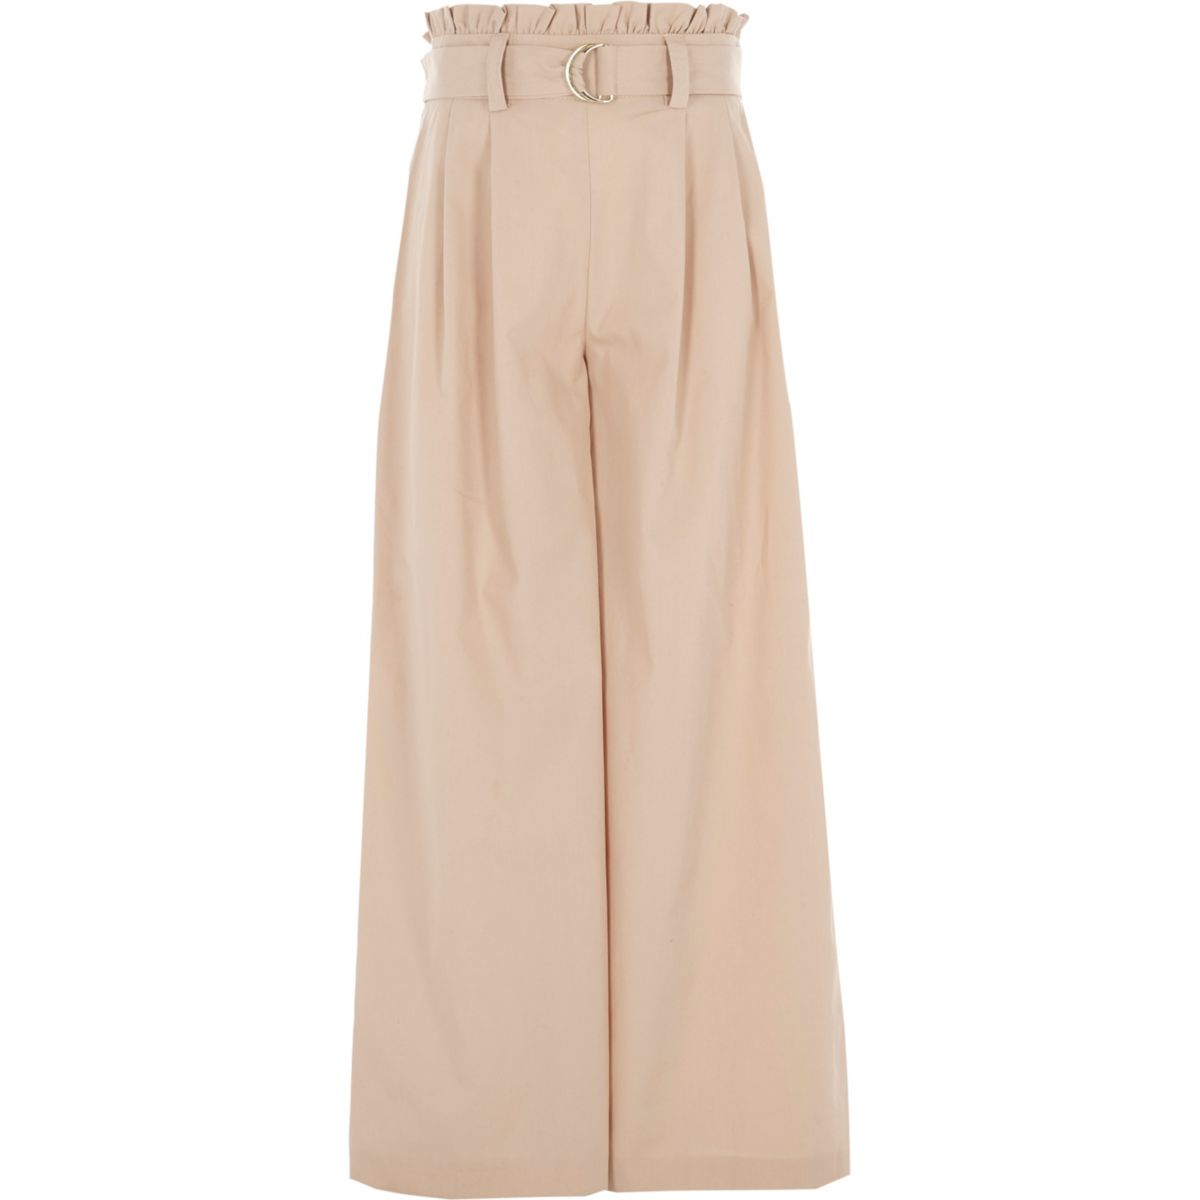 BEIGE BROWN YELLOW GREEN BLUE PURPLE New arrivals Wide leg trousers Ankle Length Trousers Joggers & Sweatpants These wide leg trousers are as comfortable as they are stylish. Quick View WOMEN CORDUROY WIDE LEG CROPPED TROUSERS £ Quick View WOMEN INES COTTON CULOTTES £ £